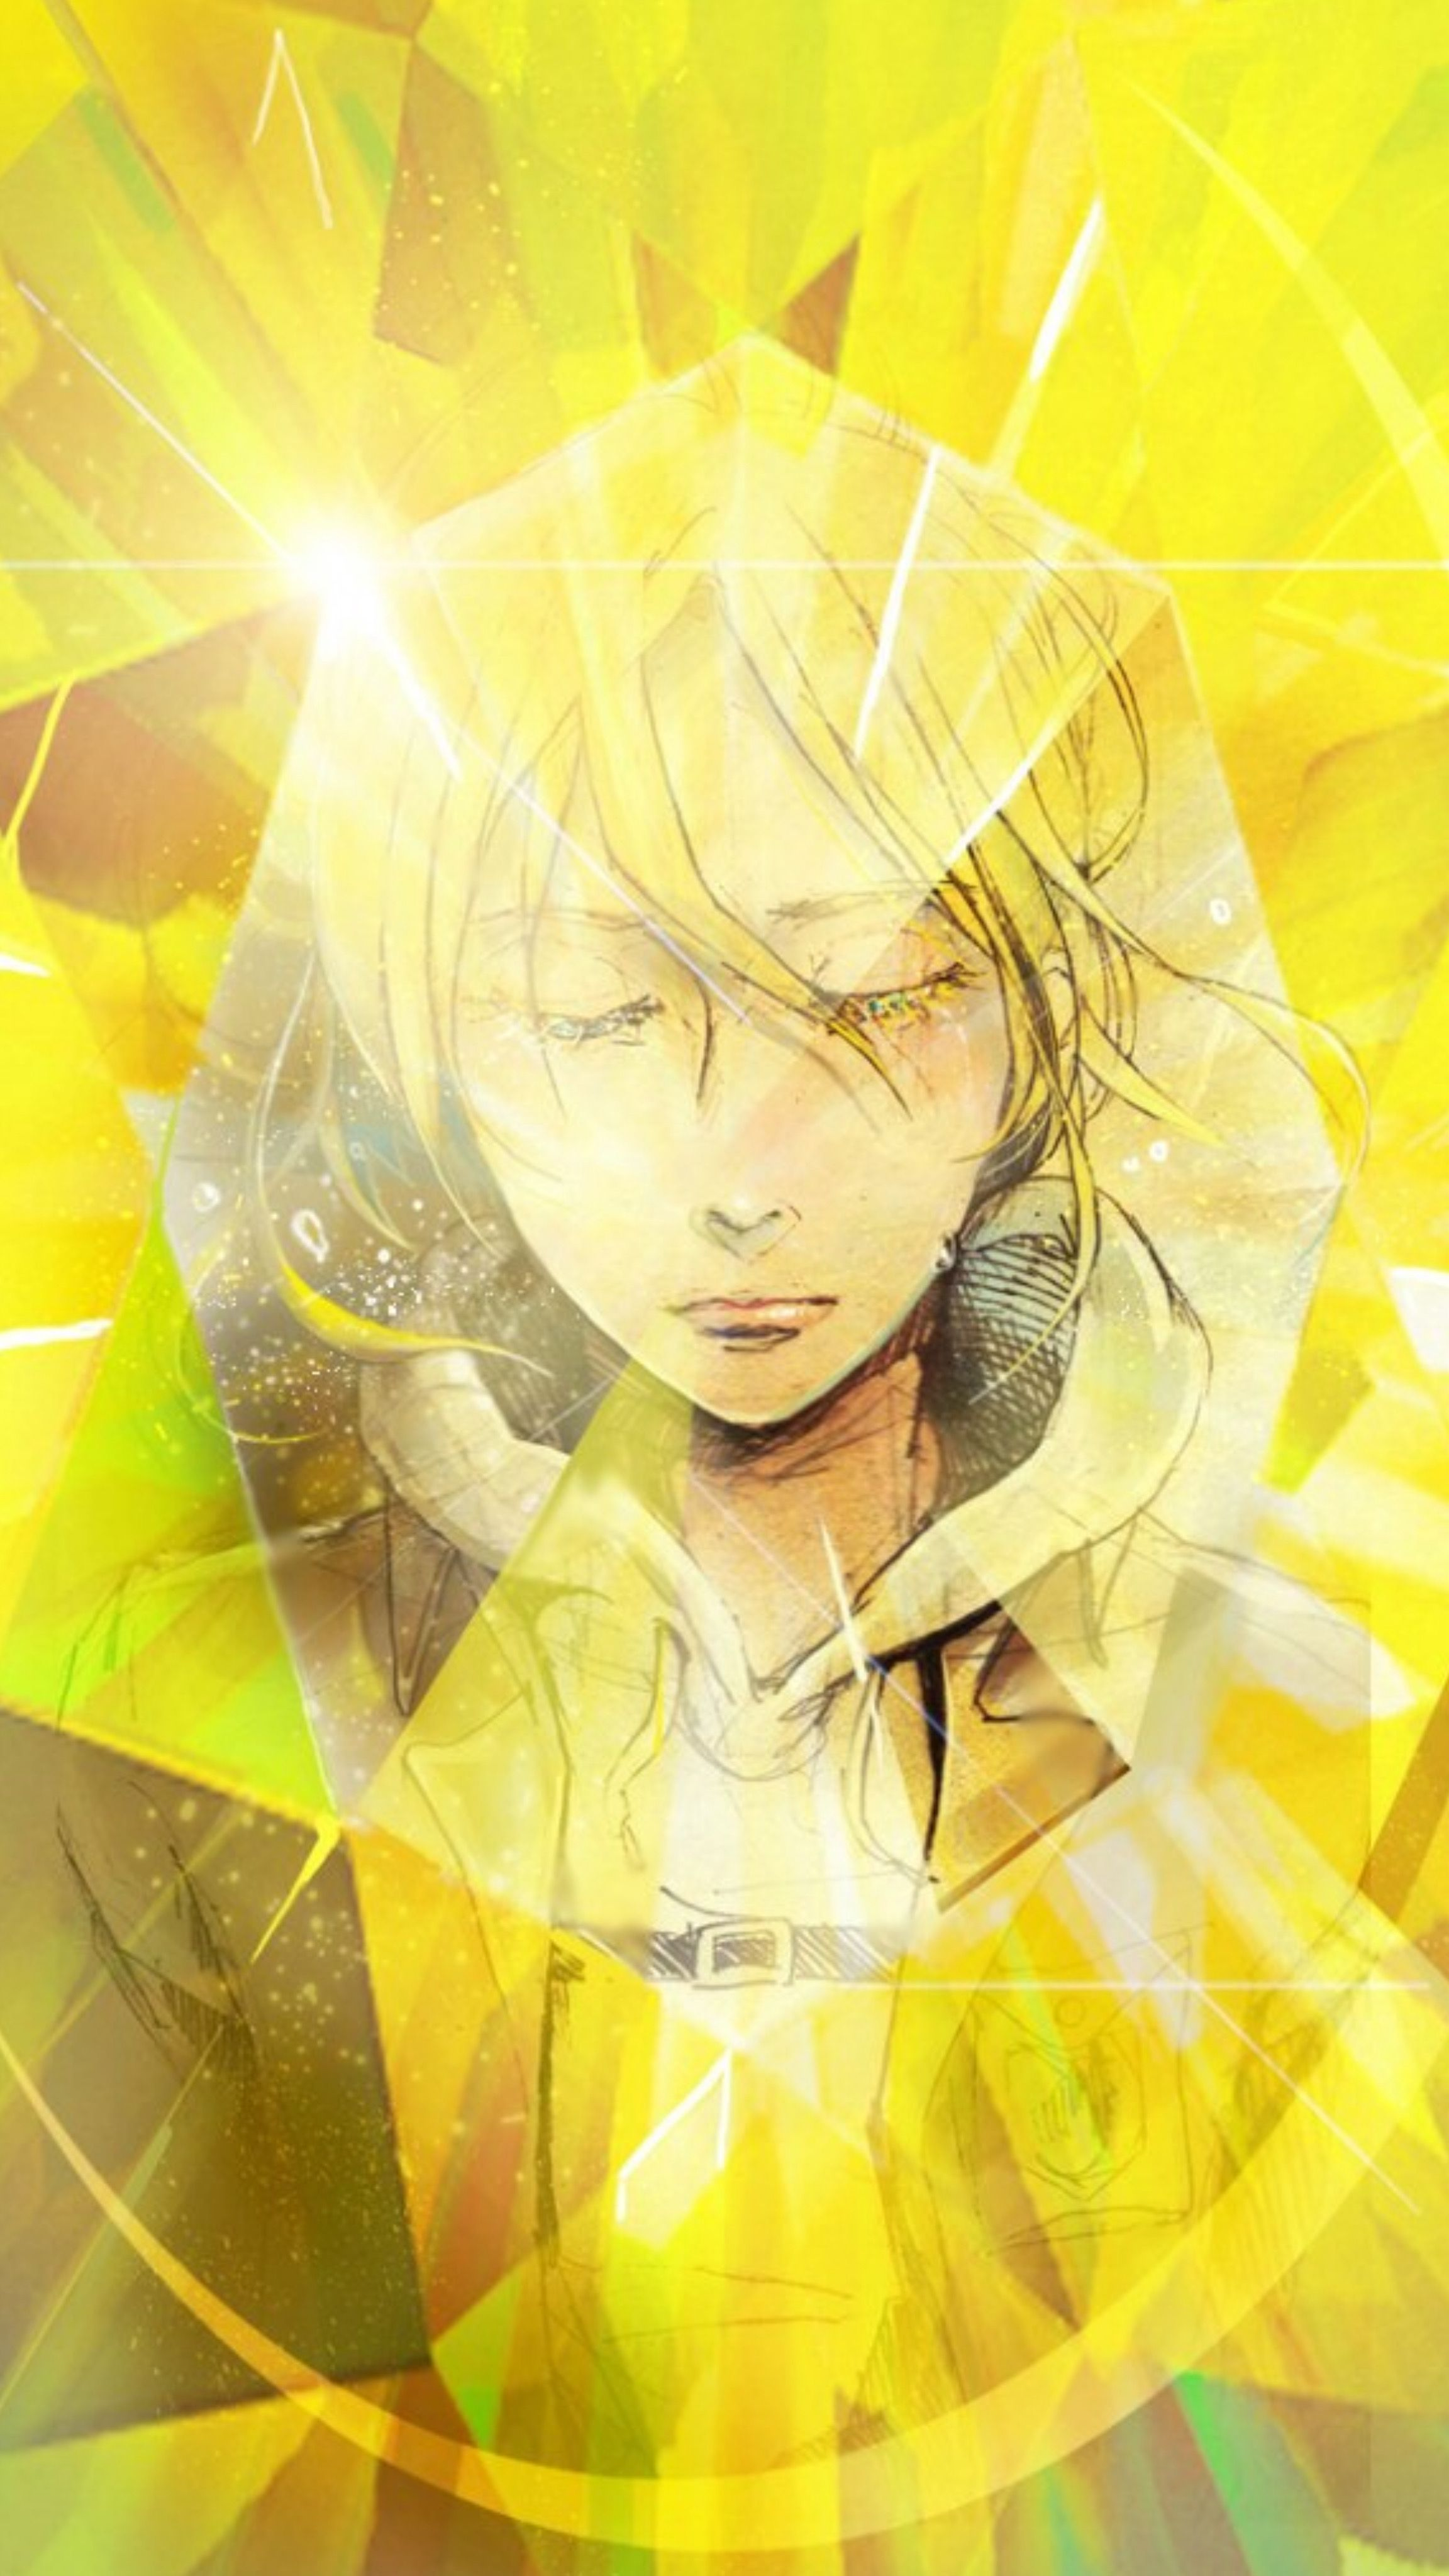 Pin By Madison Reichle On Aot Snk Wallpapers In 2020 Anime Anime Images Character Design References